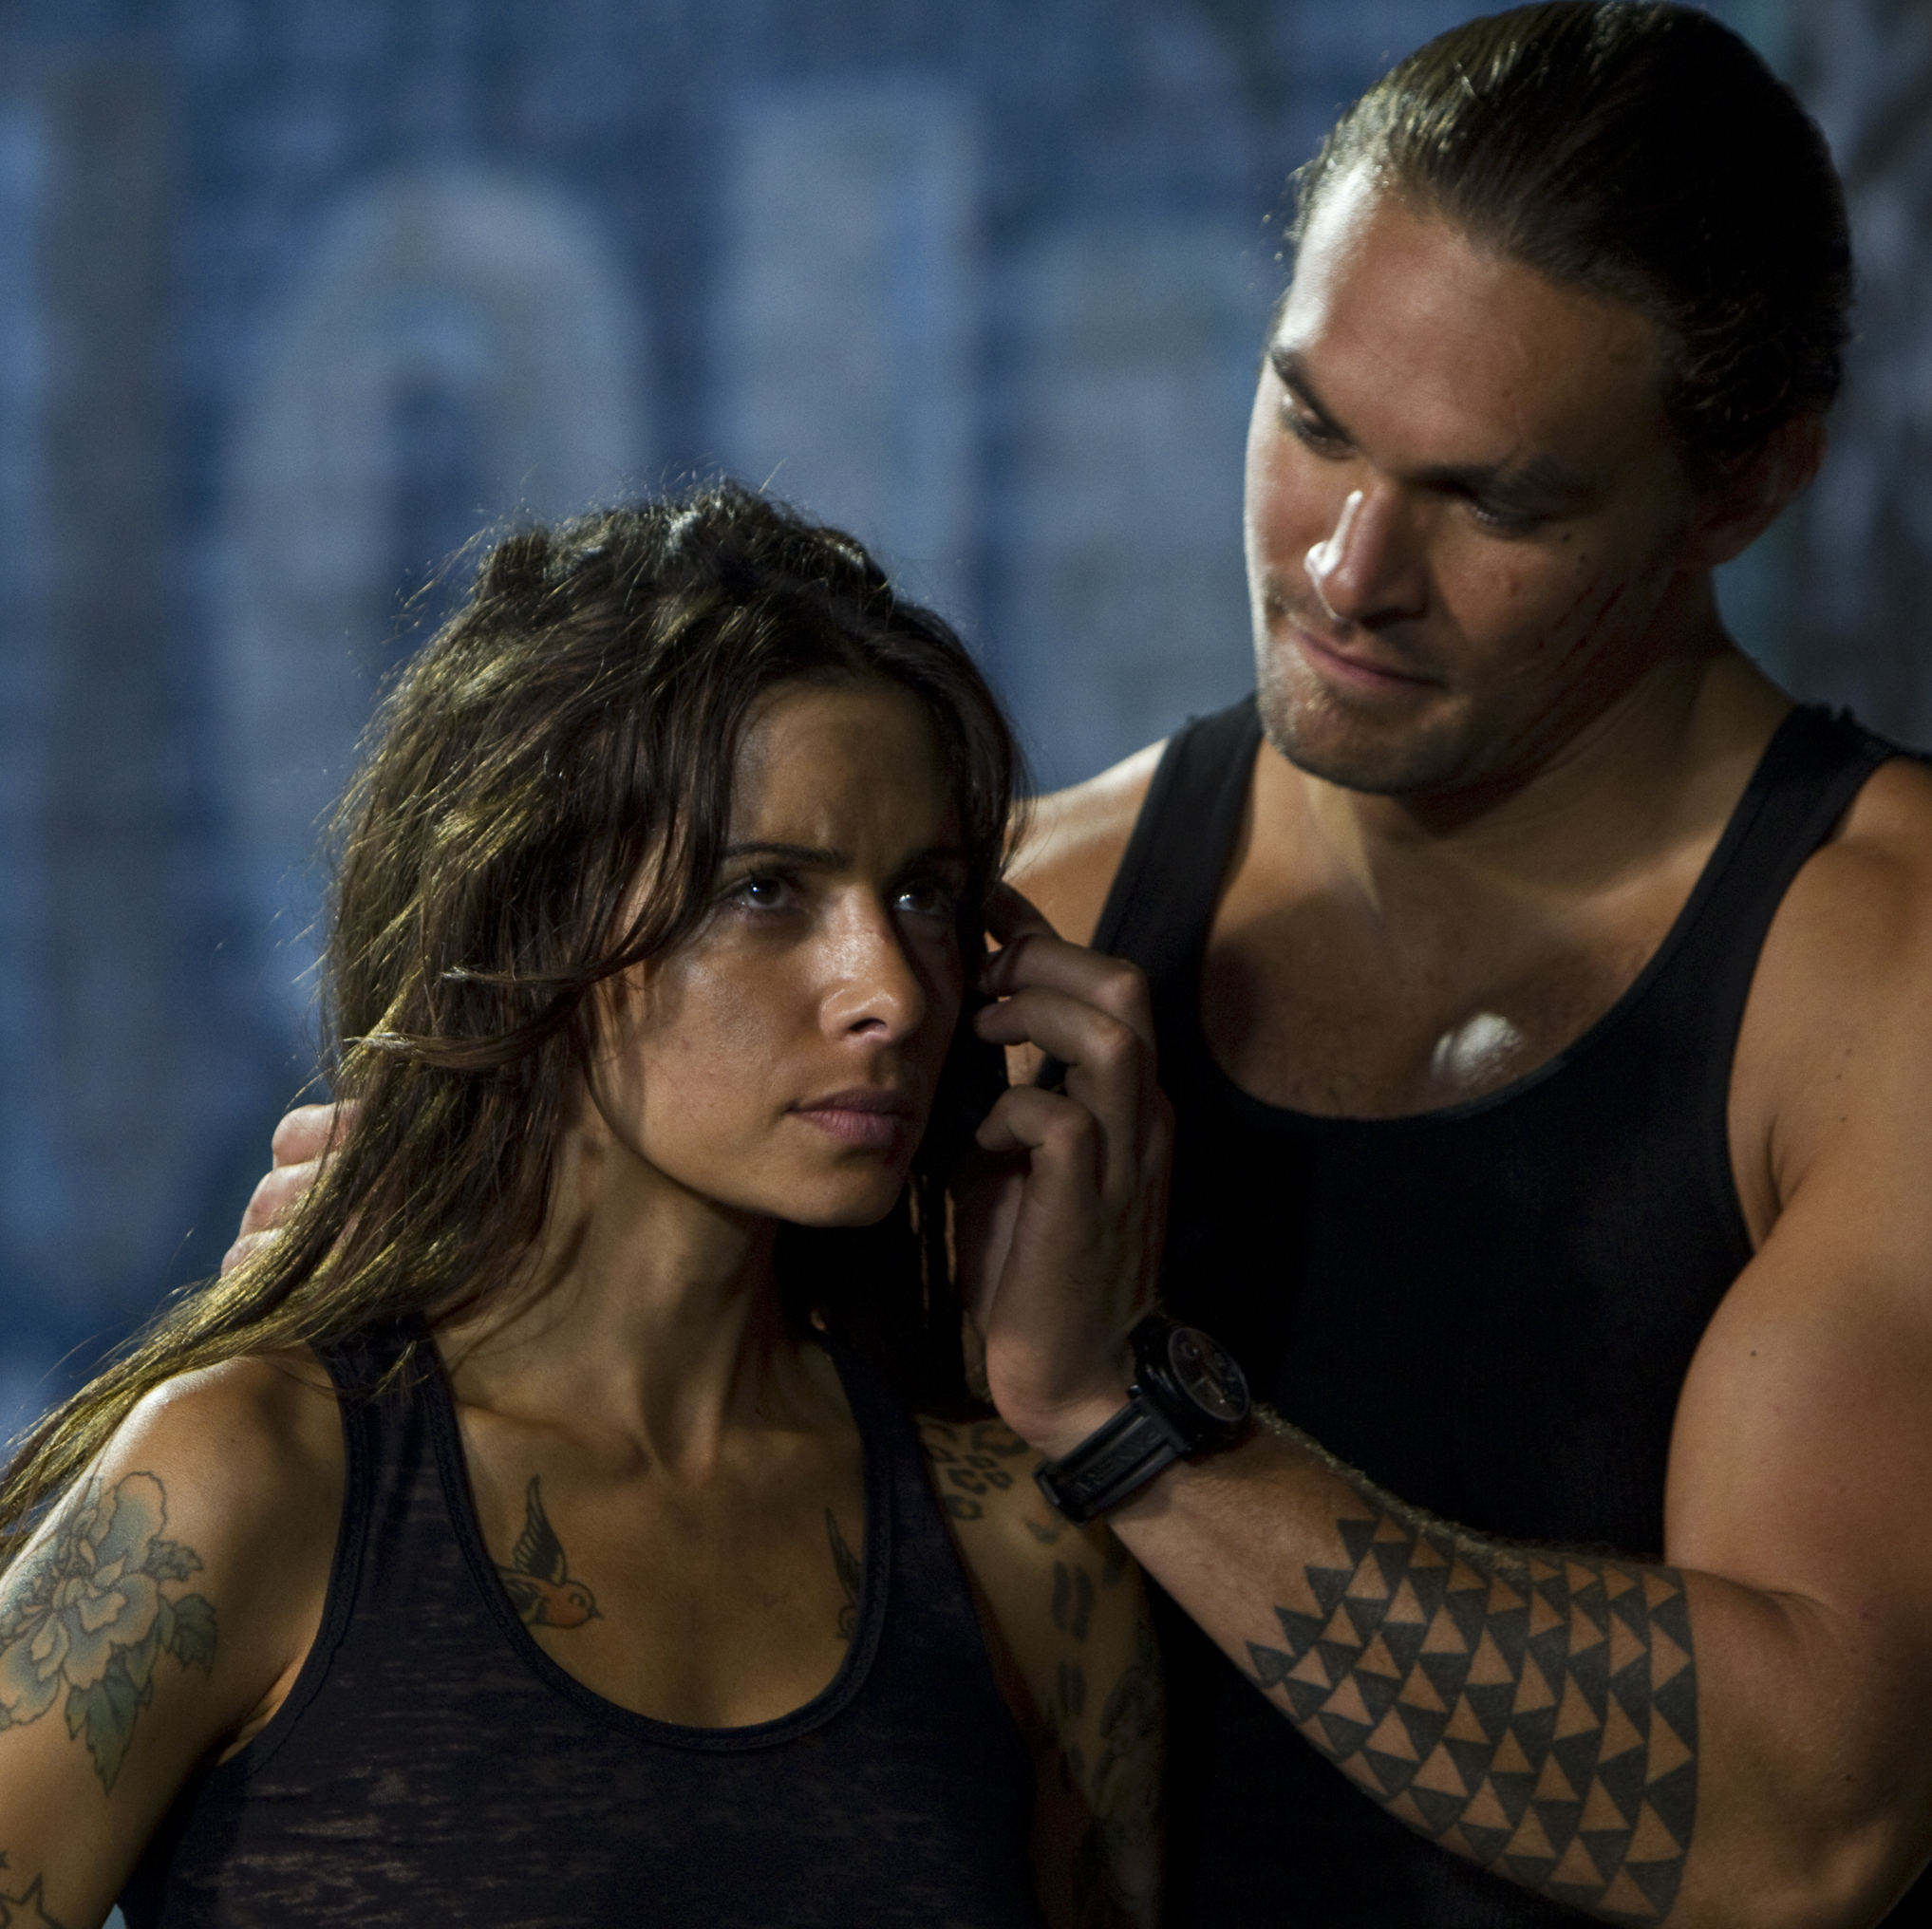 Sarah Shahi's tattoo artist -- who has ties to both Kang and Stallone's characters -- falls into the clutches of a mob enforcer (Jason Momoa).